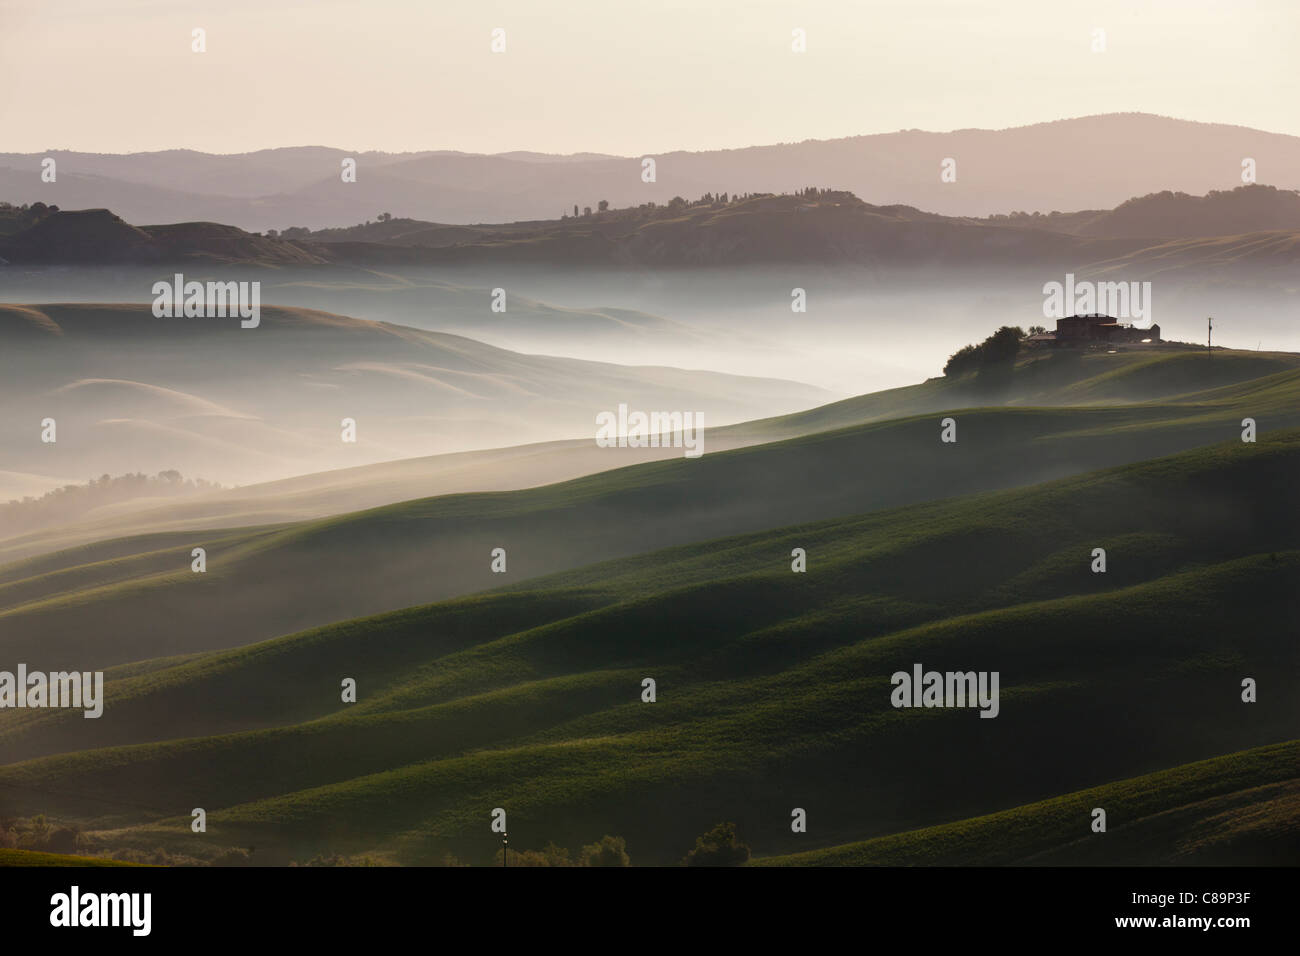 Italy, Tuscany, Crete, View of farm with fog at hilly landscape - Stock Image